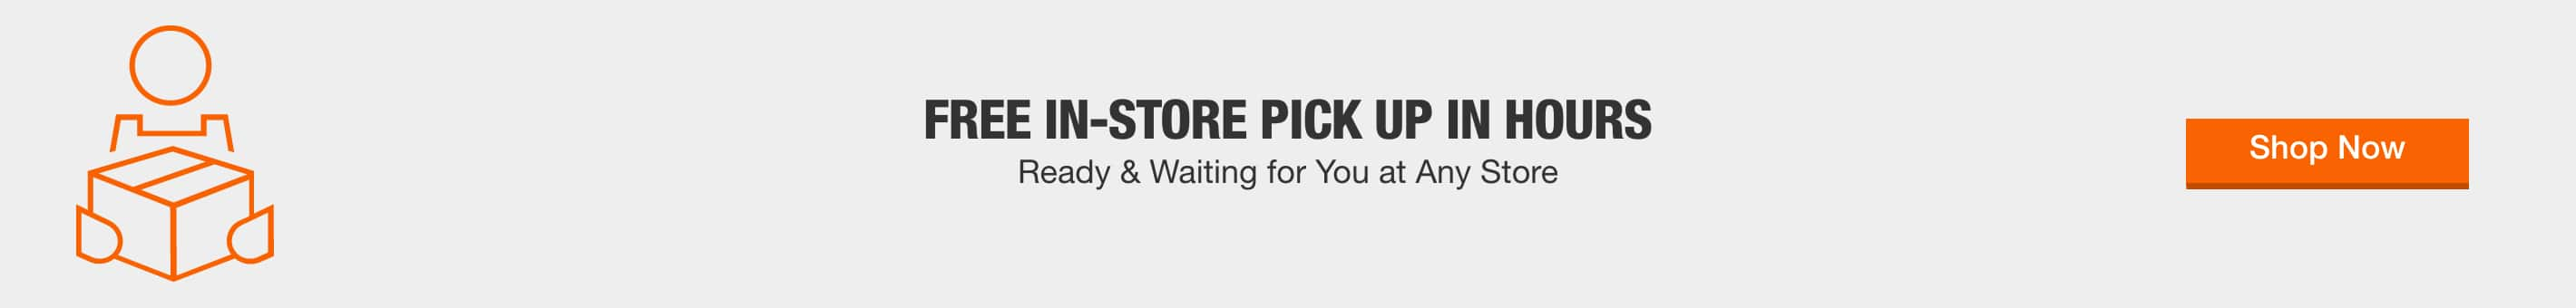 FREE IN-STORE PICKUP IN HOURS - Ready and waiting for you at any store > Shop Now